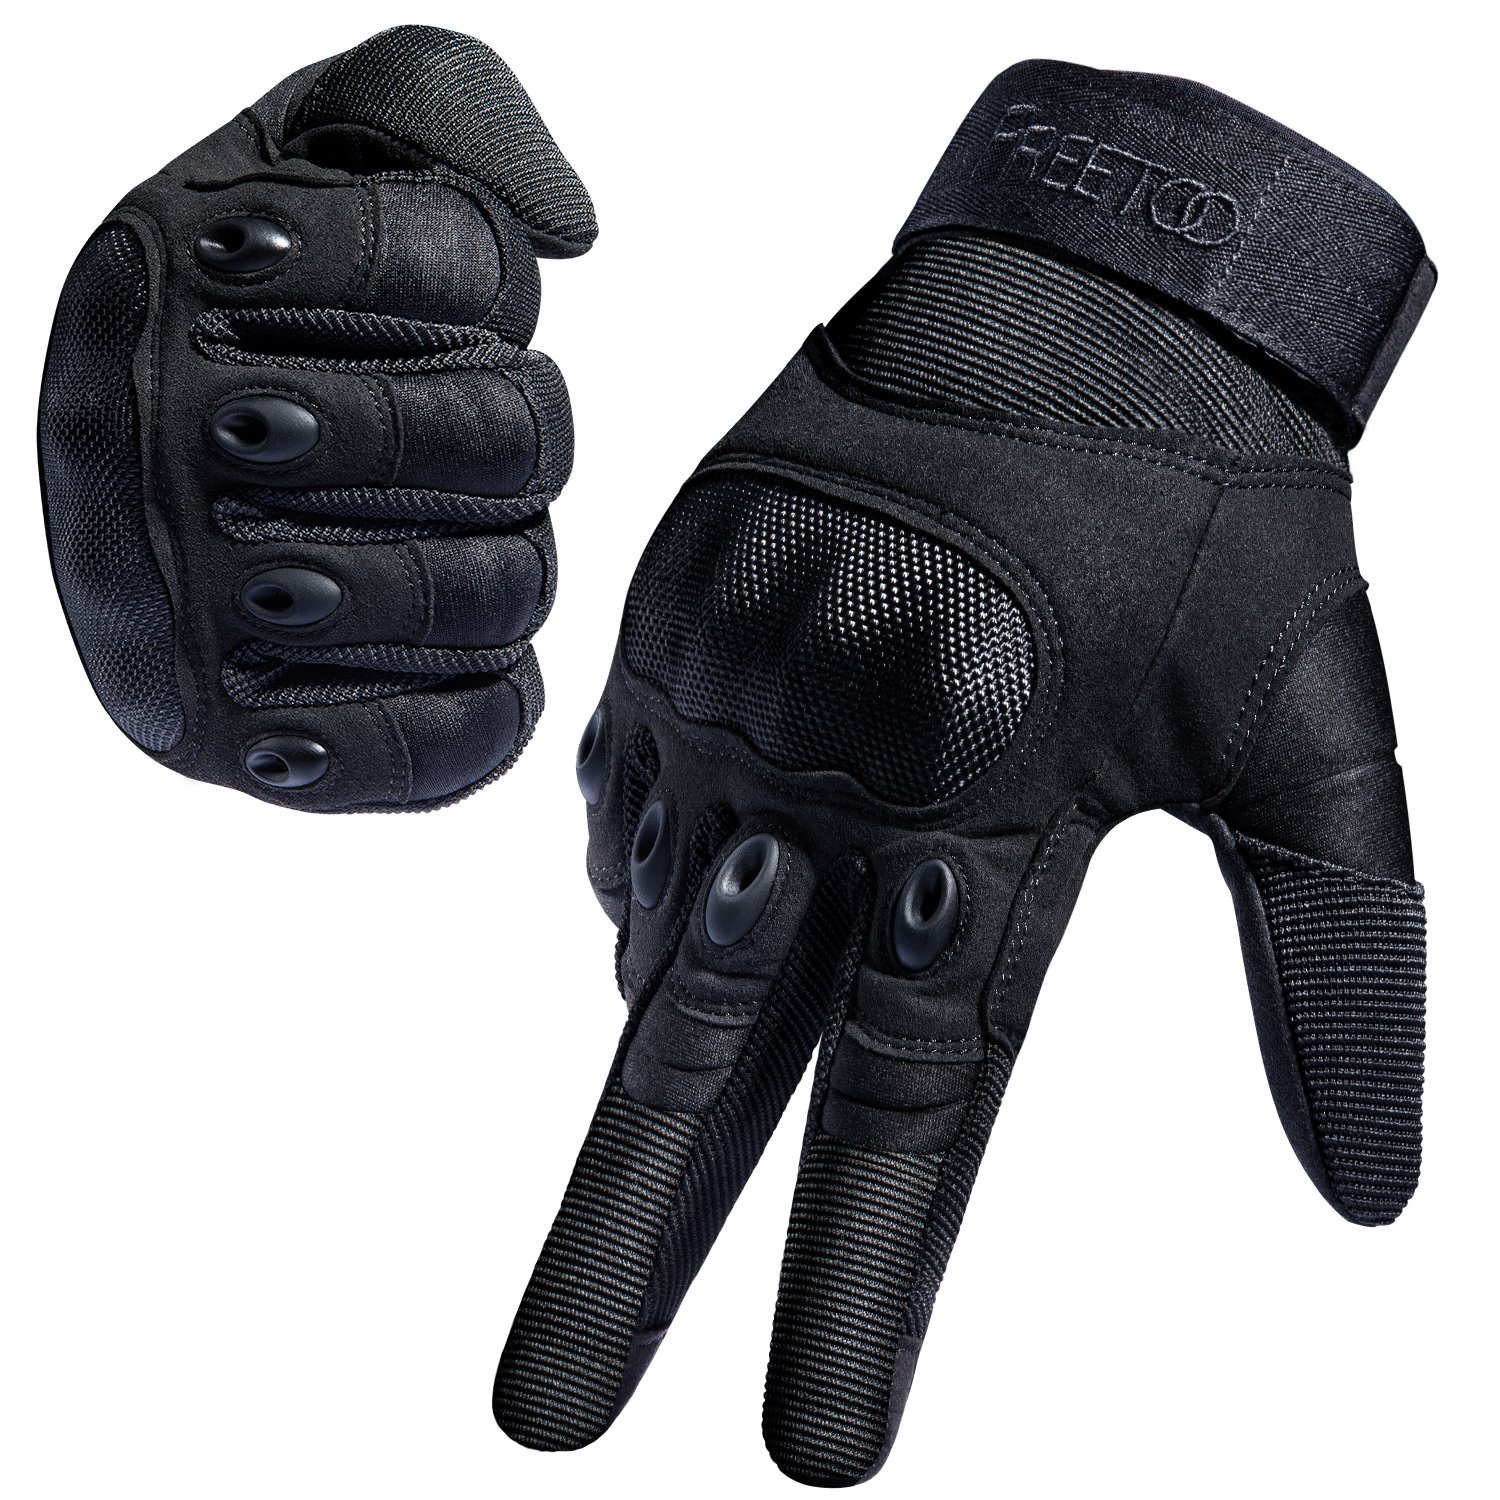 Tactical Multi-Utility Gloves with Rubber Hard Knuckle from Freetoo